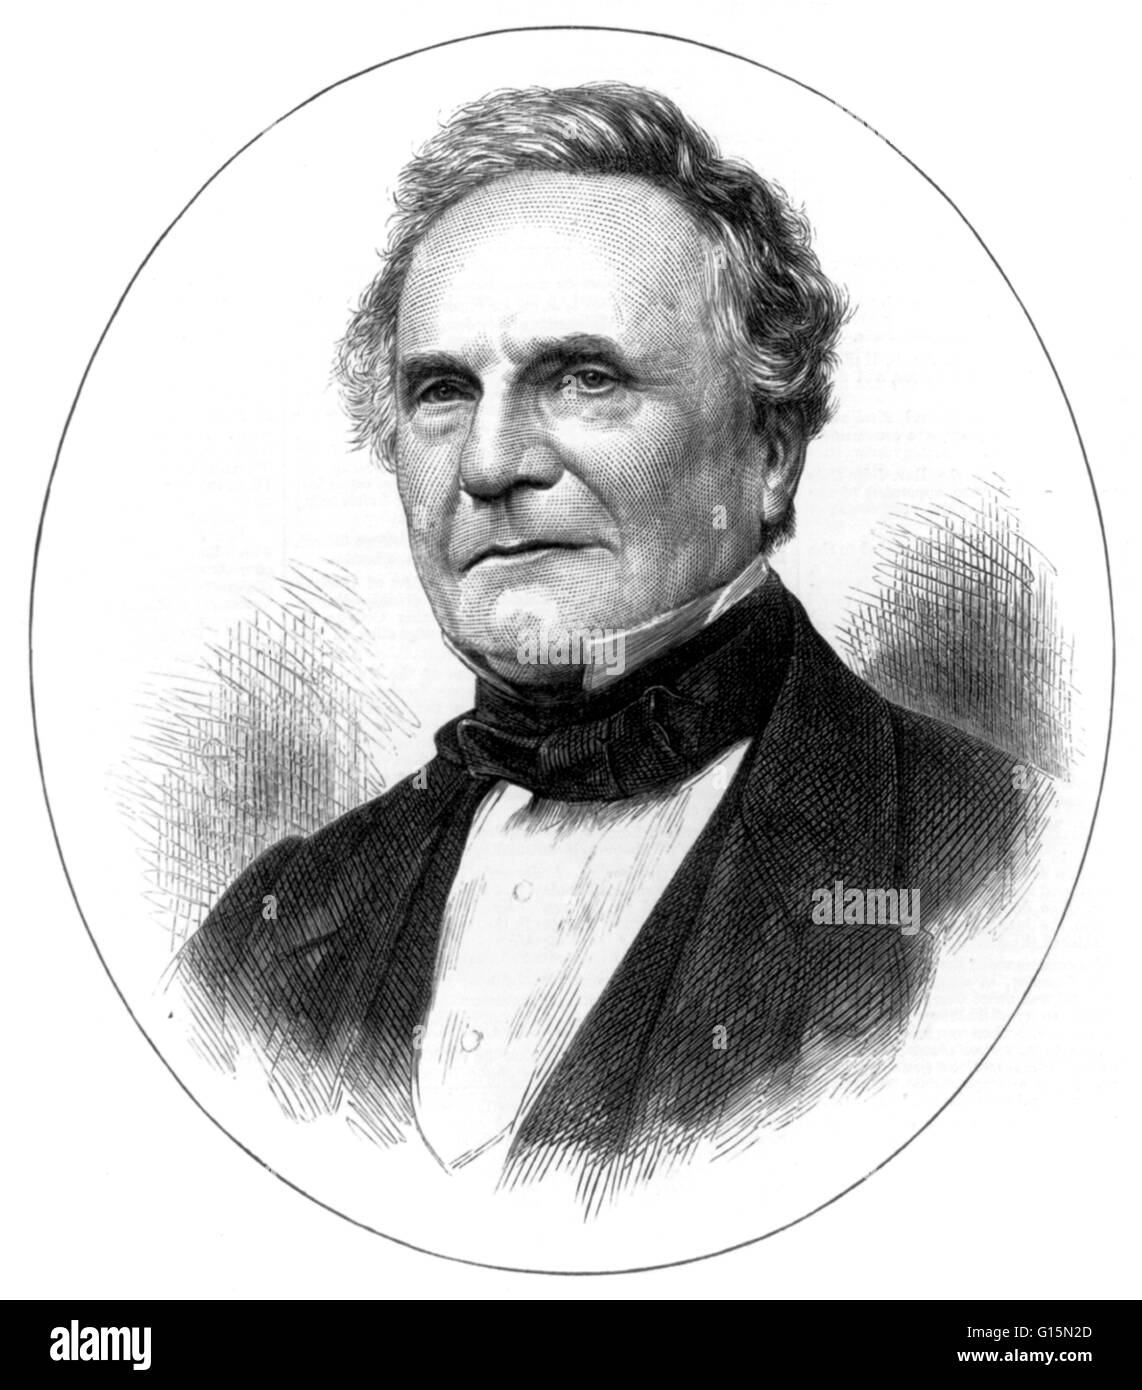 Charles Babbage (December 26, 1791 - October 18, 1871) was an English mathematician, philosopher, inventor and mechanical - Stock Image